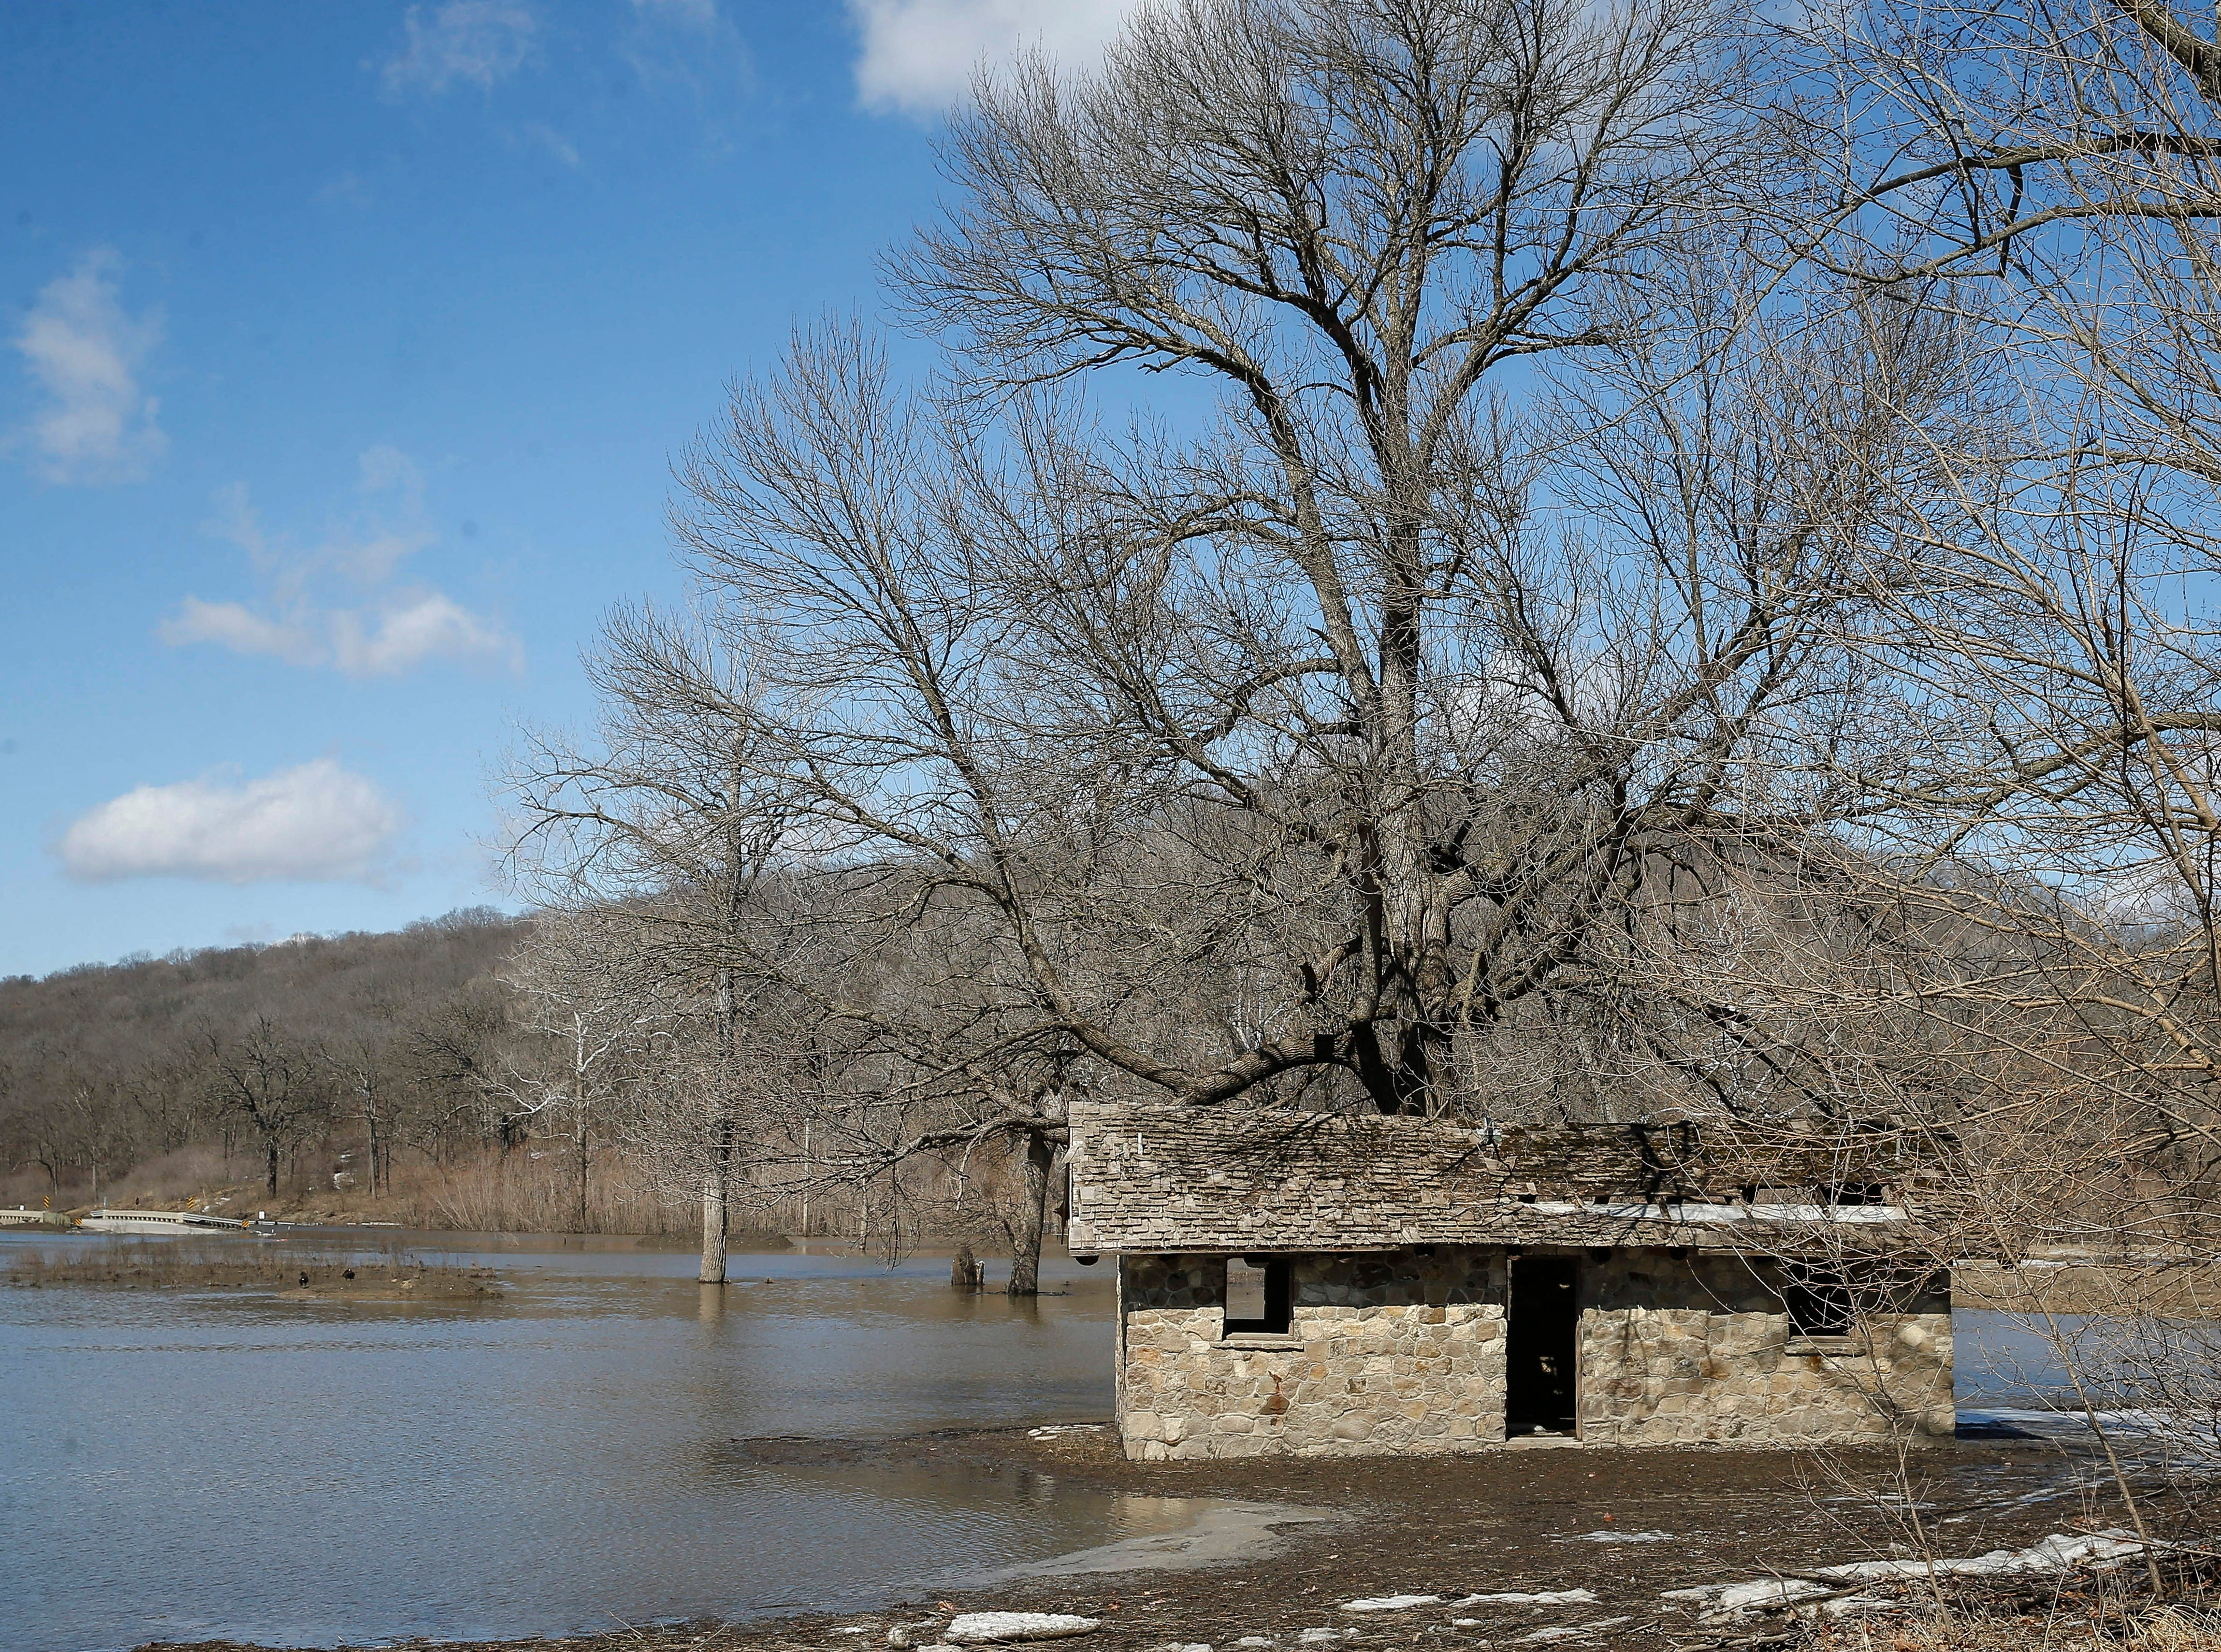 A portion of Ledges Park was under water as the Des Moines River flooded the area on Friday, March 15, 2019.